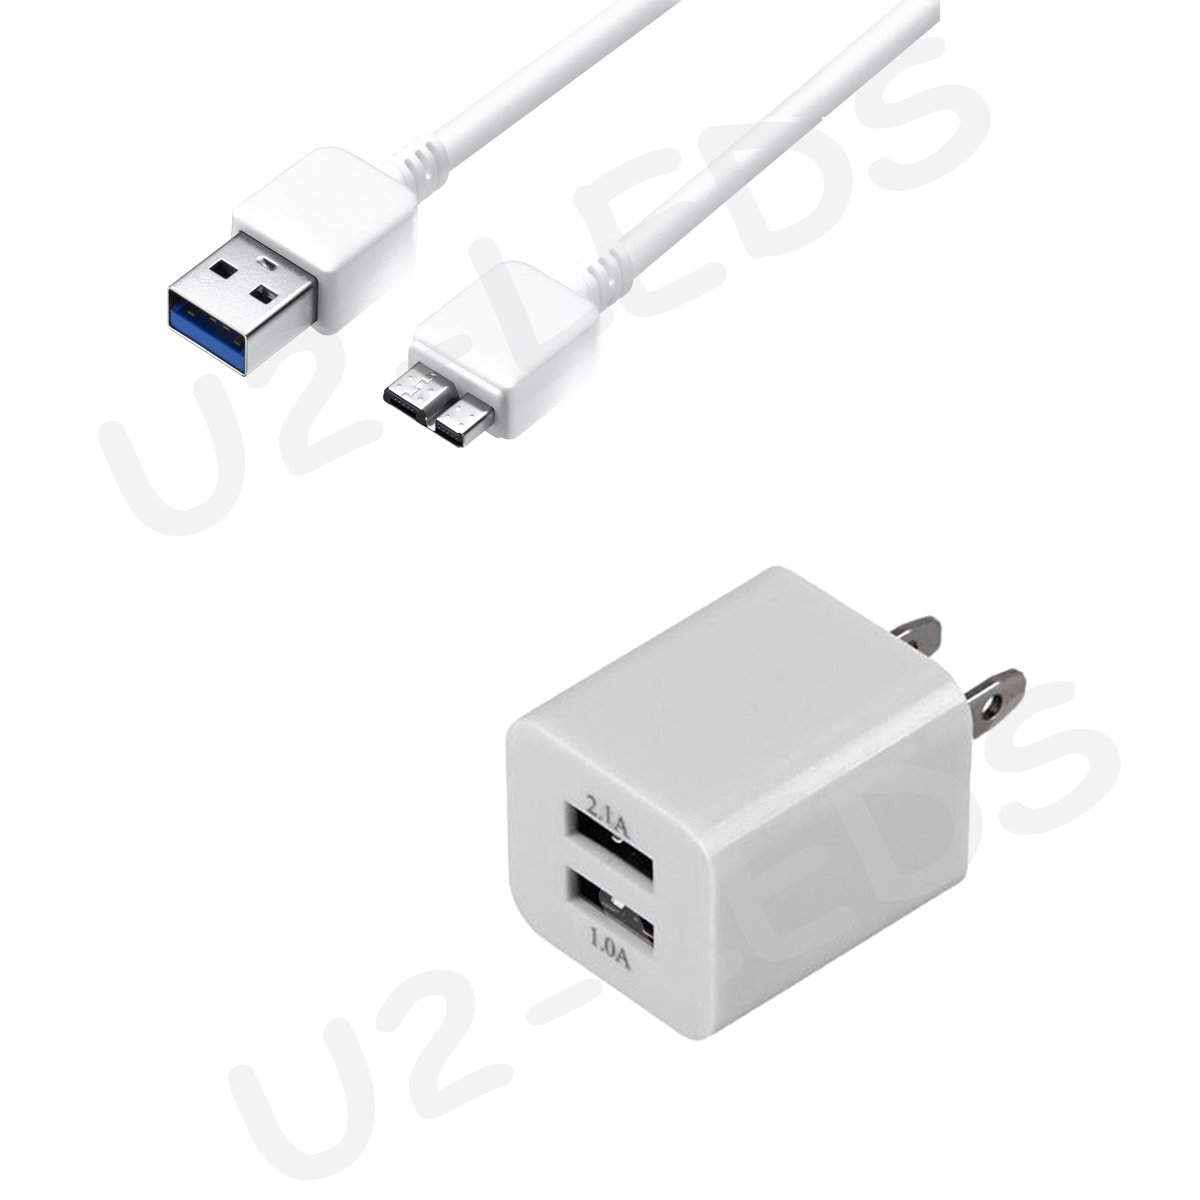 Dual USB Wall AC Home Charger + USB 3.0 Data Sync Cable for Samsung Note 3 Galaxy S5 N9000